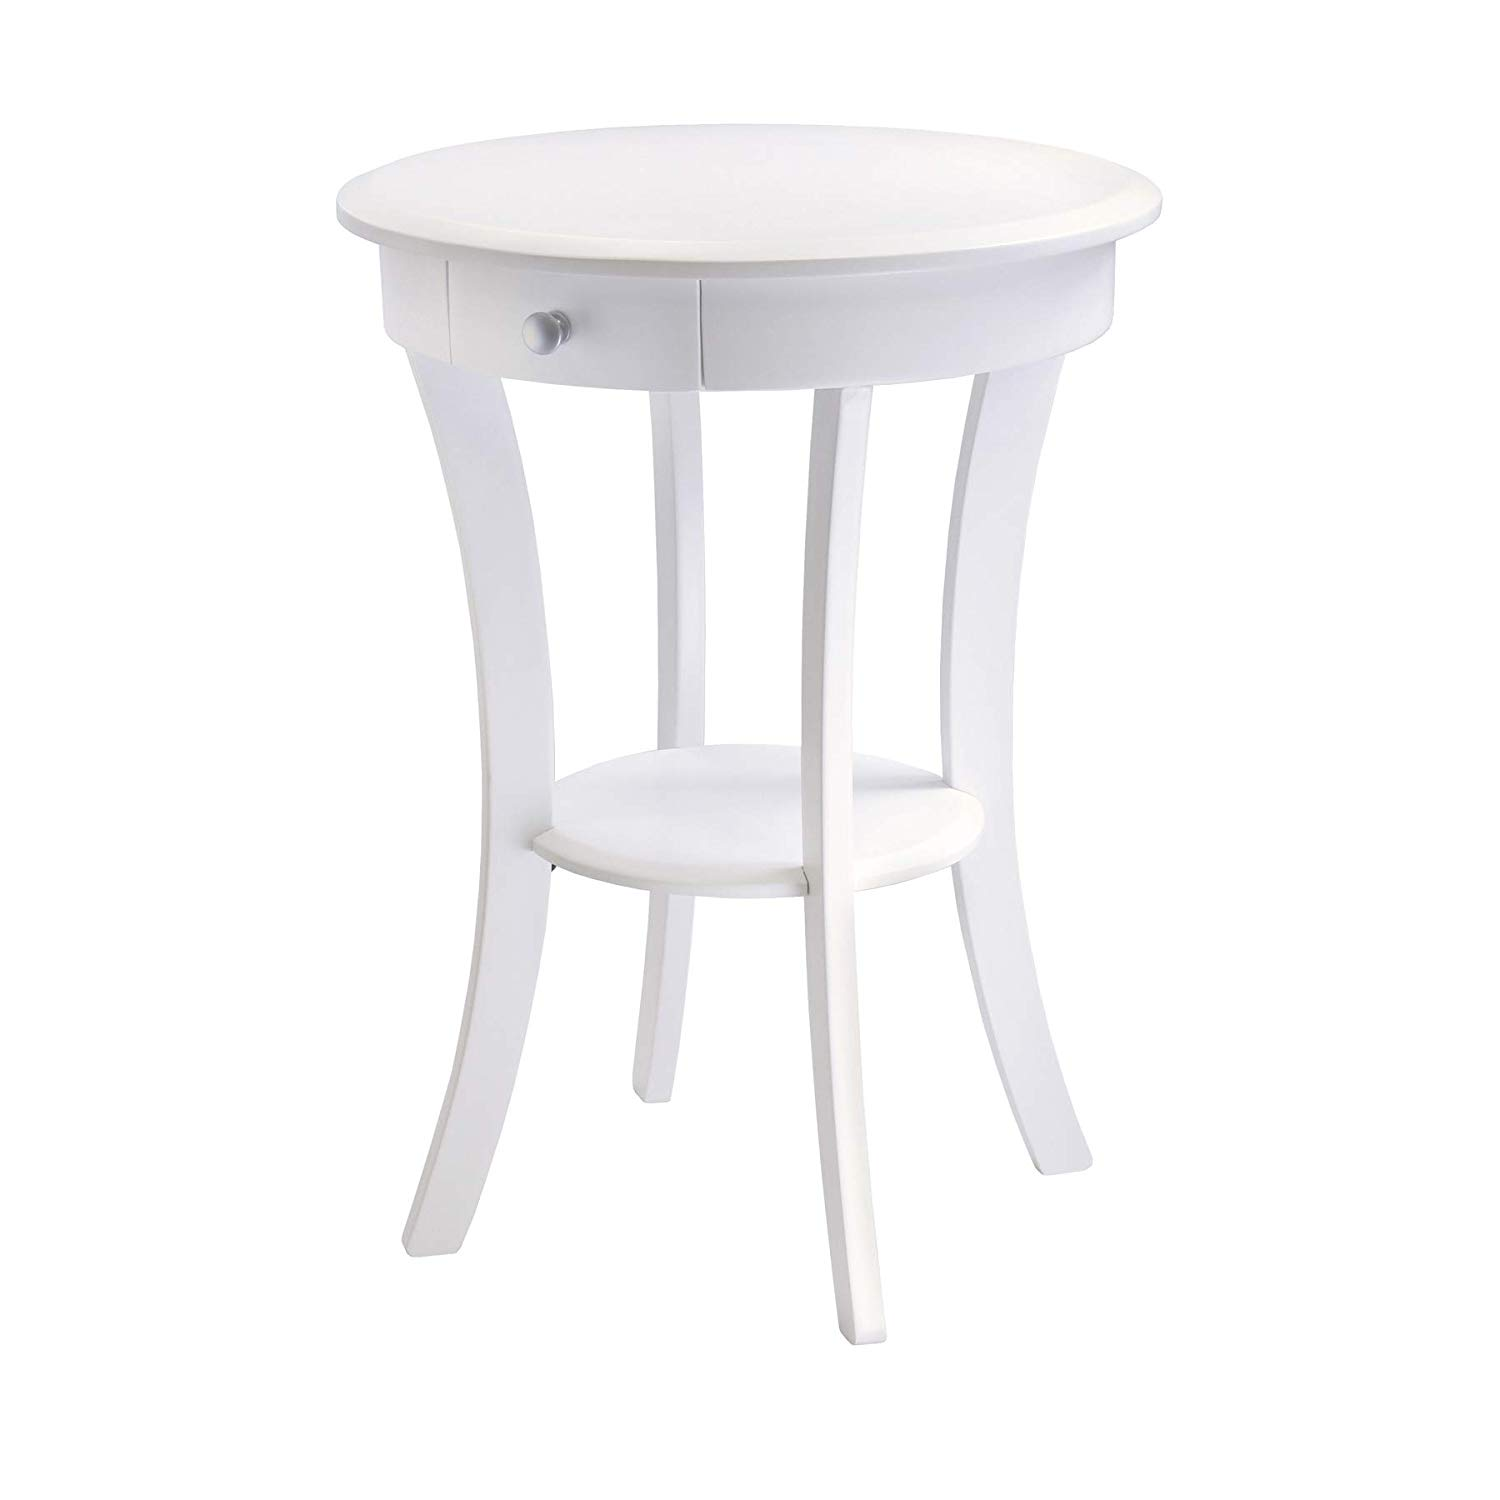 winsome wood sasha accent table white kitchen ugjsbl nursery dining bar height and chairs laminate floor trim wall clocks round outdoor patio bobkona furniture pottery barn high